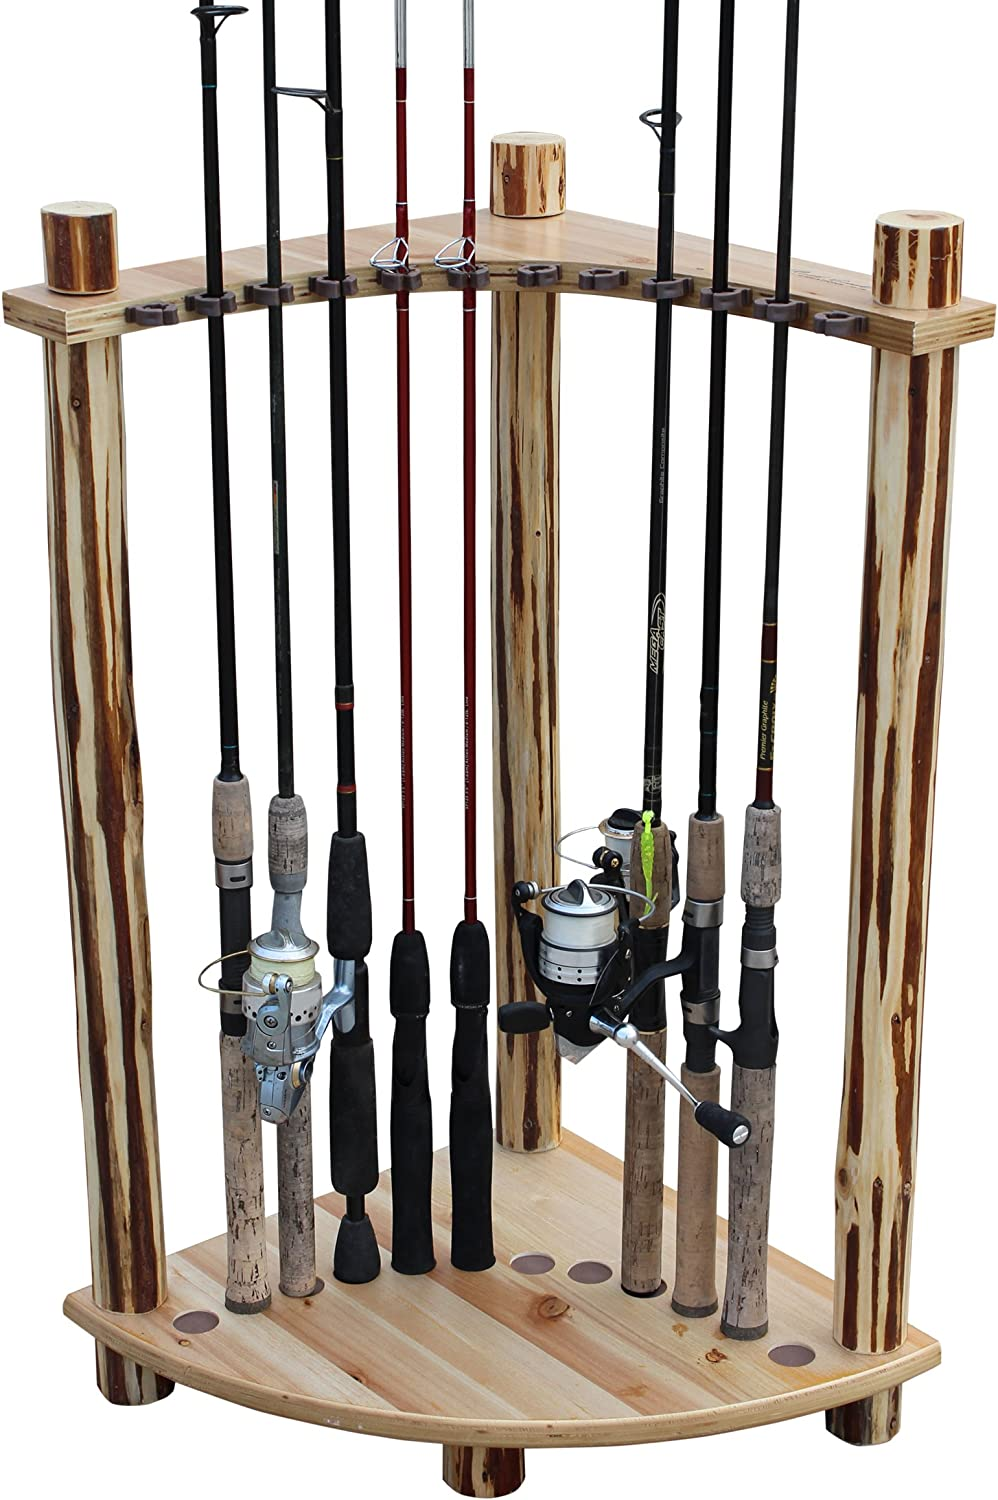 Rush Creek Creations Rustic Log 12 Fishing Rod Storage Corner Rack – Handcrafted Solid Pine – No Tool Assembly